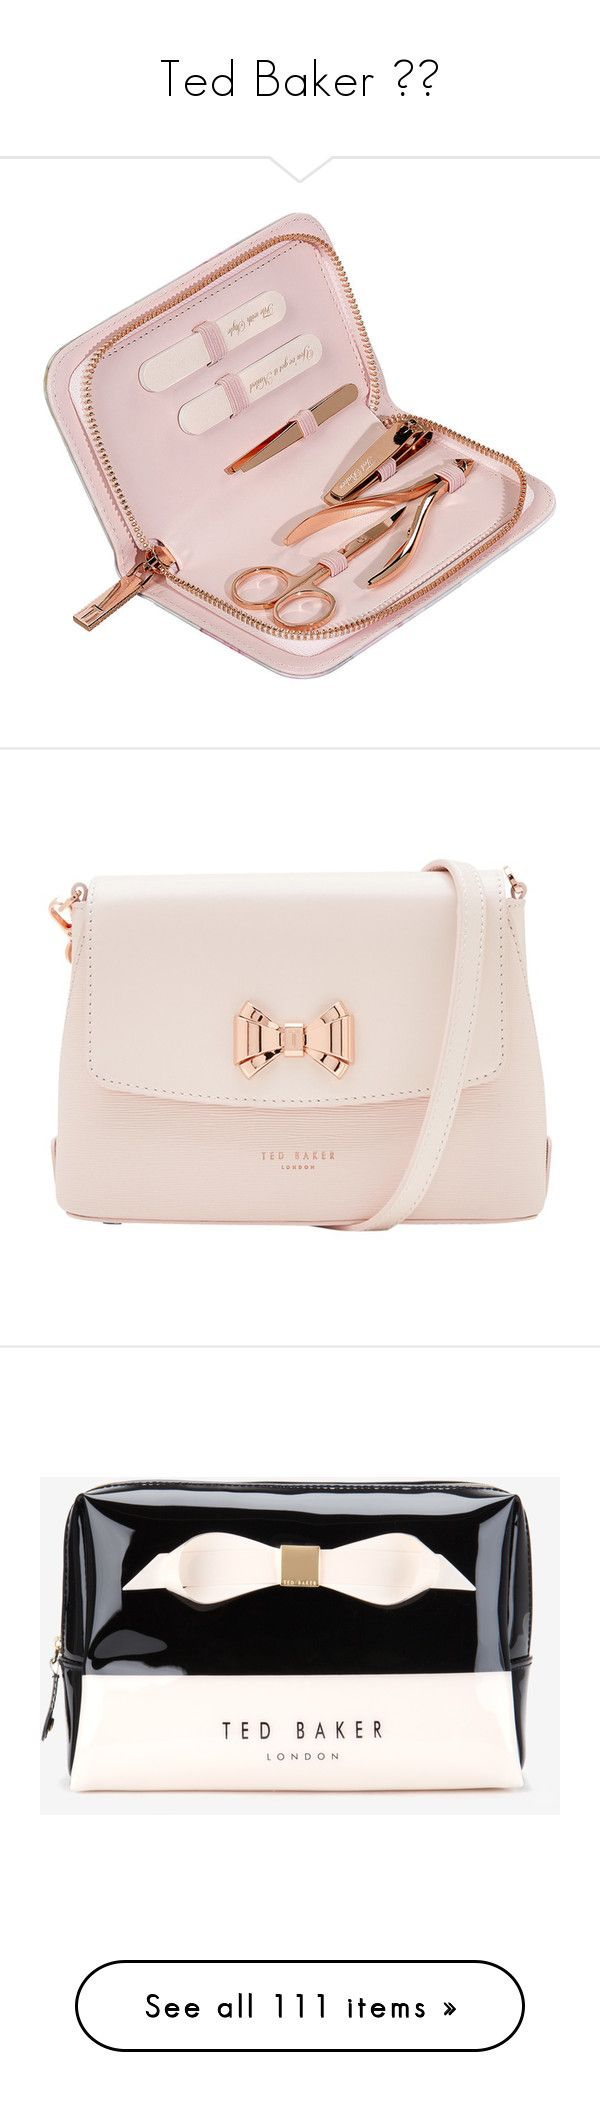 """""""Ted Baker 👜💲"""" by faanciella ❤ liked on Polyvore featuring beauty products, nail care, manicure tools, accessories, beauty, filler, white, manicure and pedicure kit, ted baker and manicure pedicure kit"""